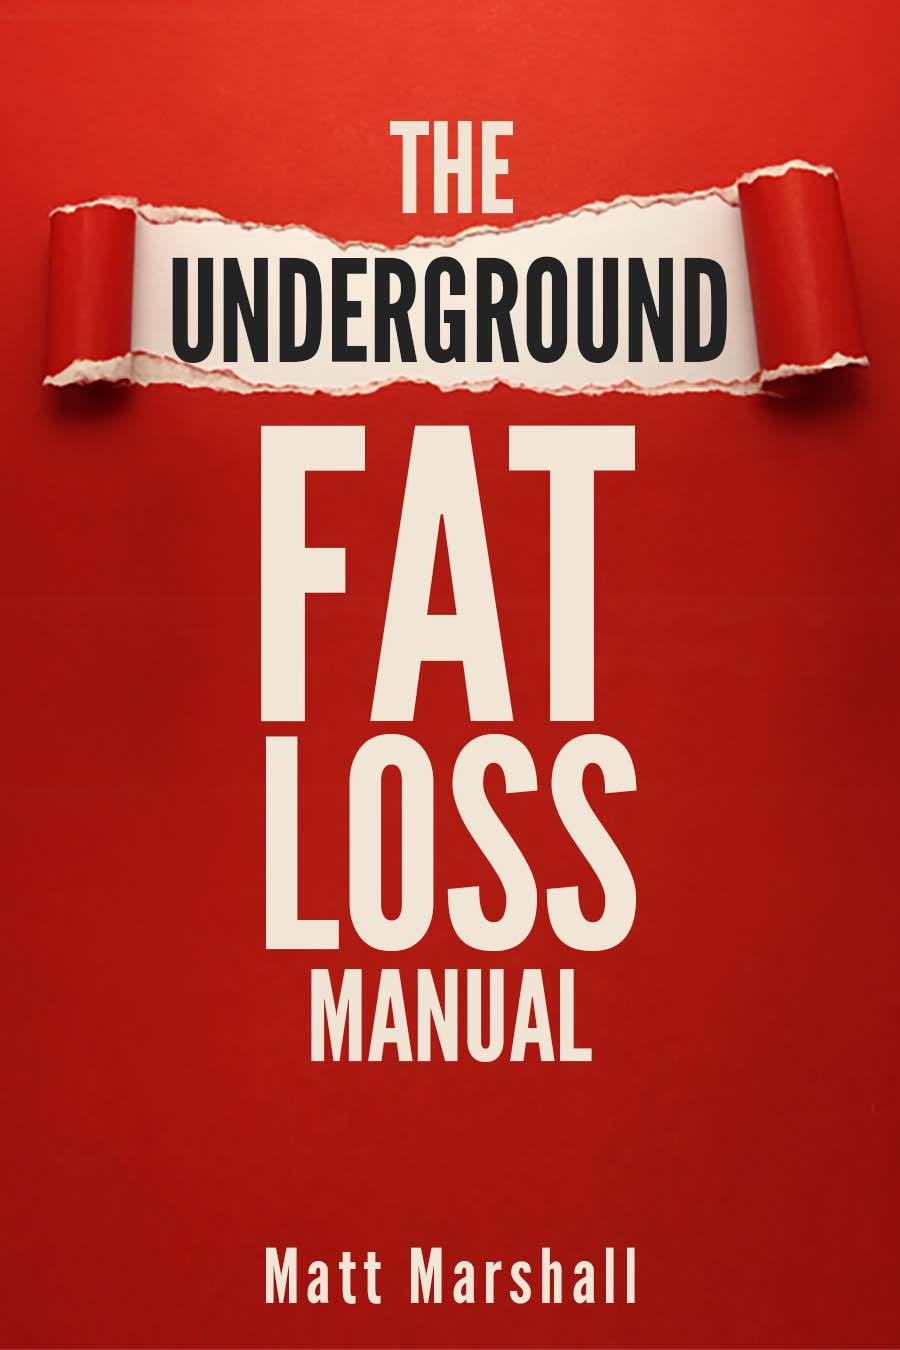 The Underground Fat Loss Manual Review download pdf